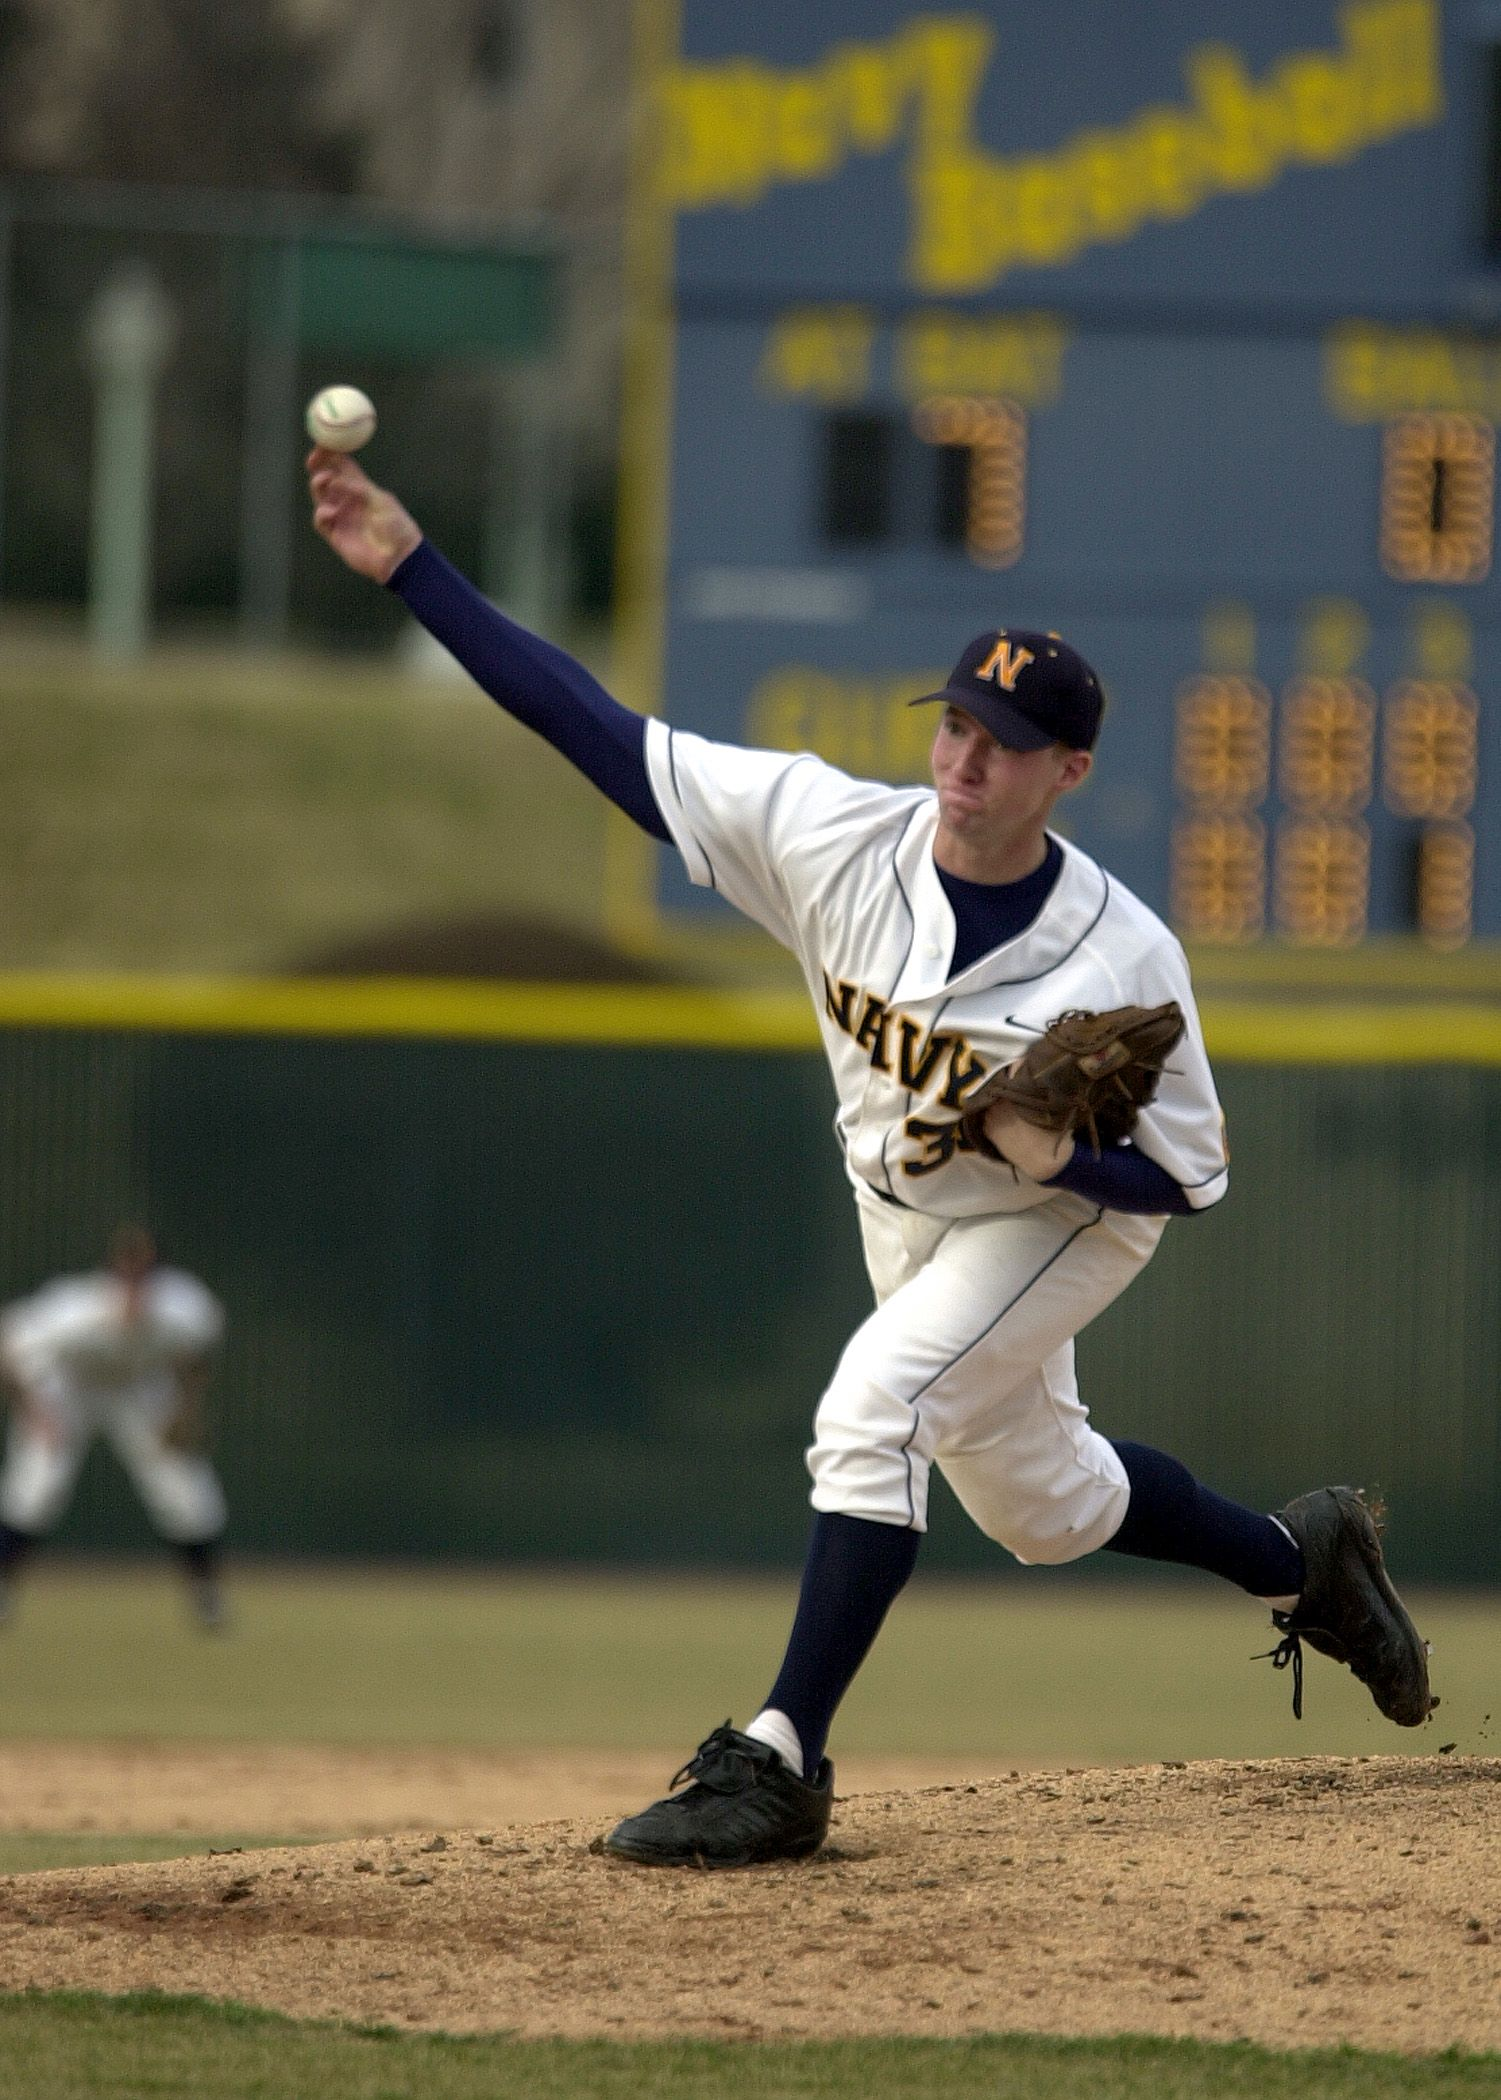 How To Deliver A Good Sales Pitch Baseball Baseball Tips Pitch